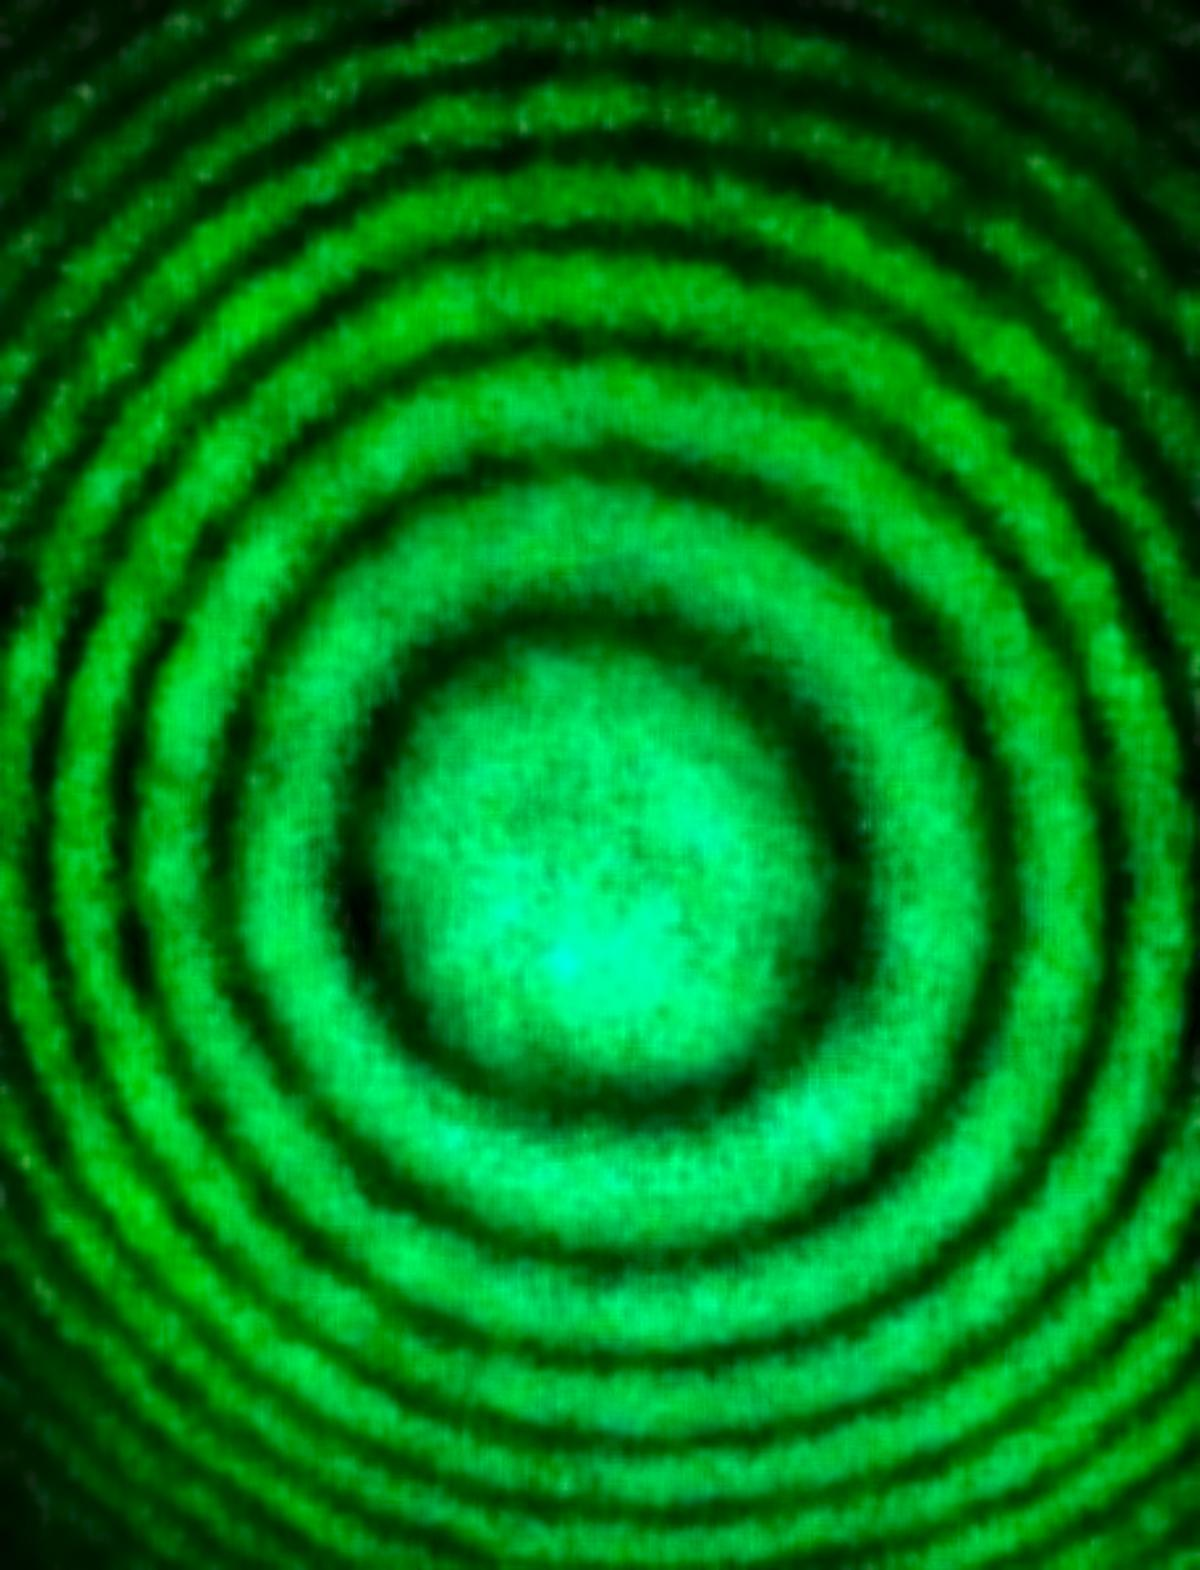 Fringes 536 nm green laser.jpg